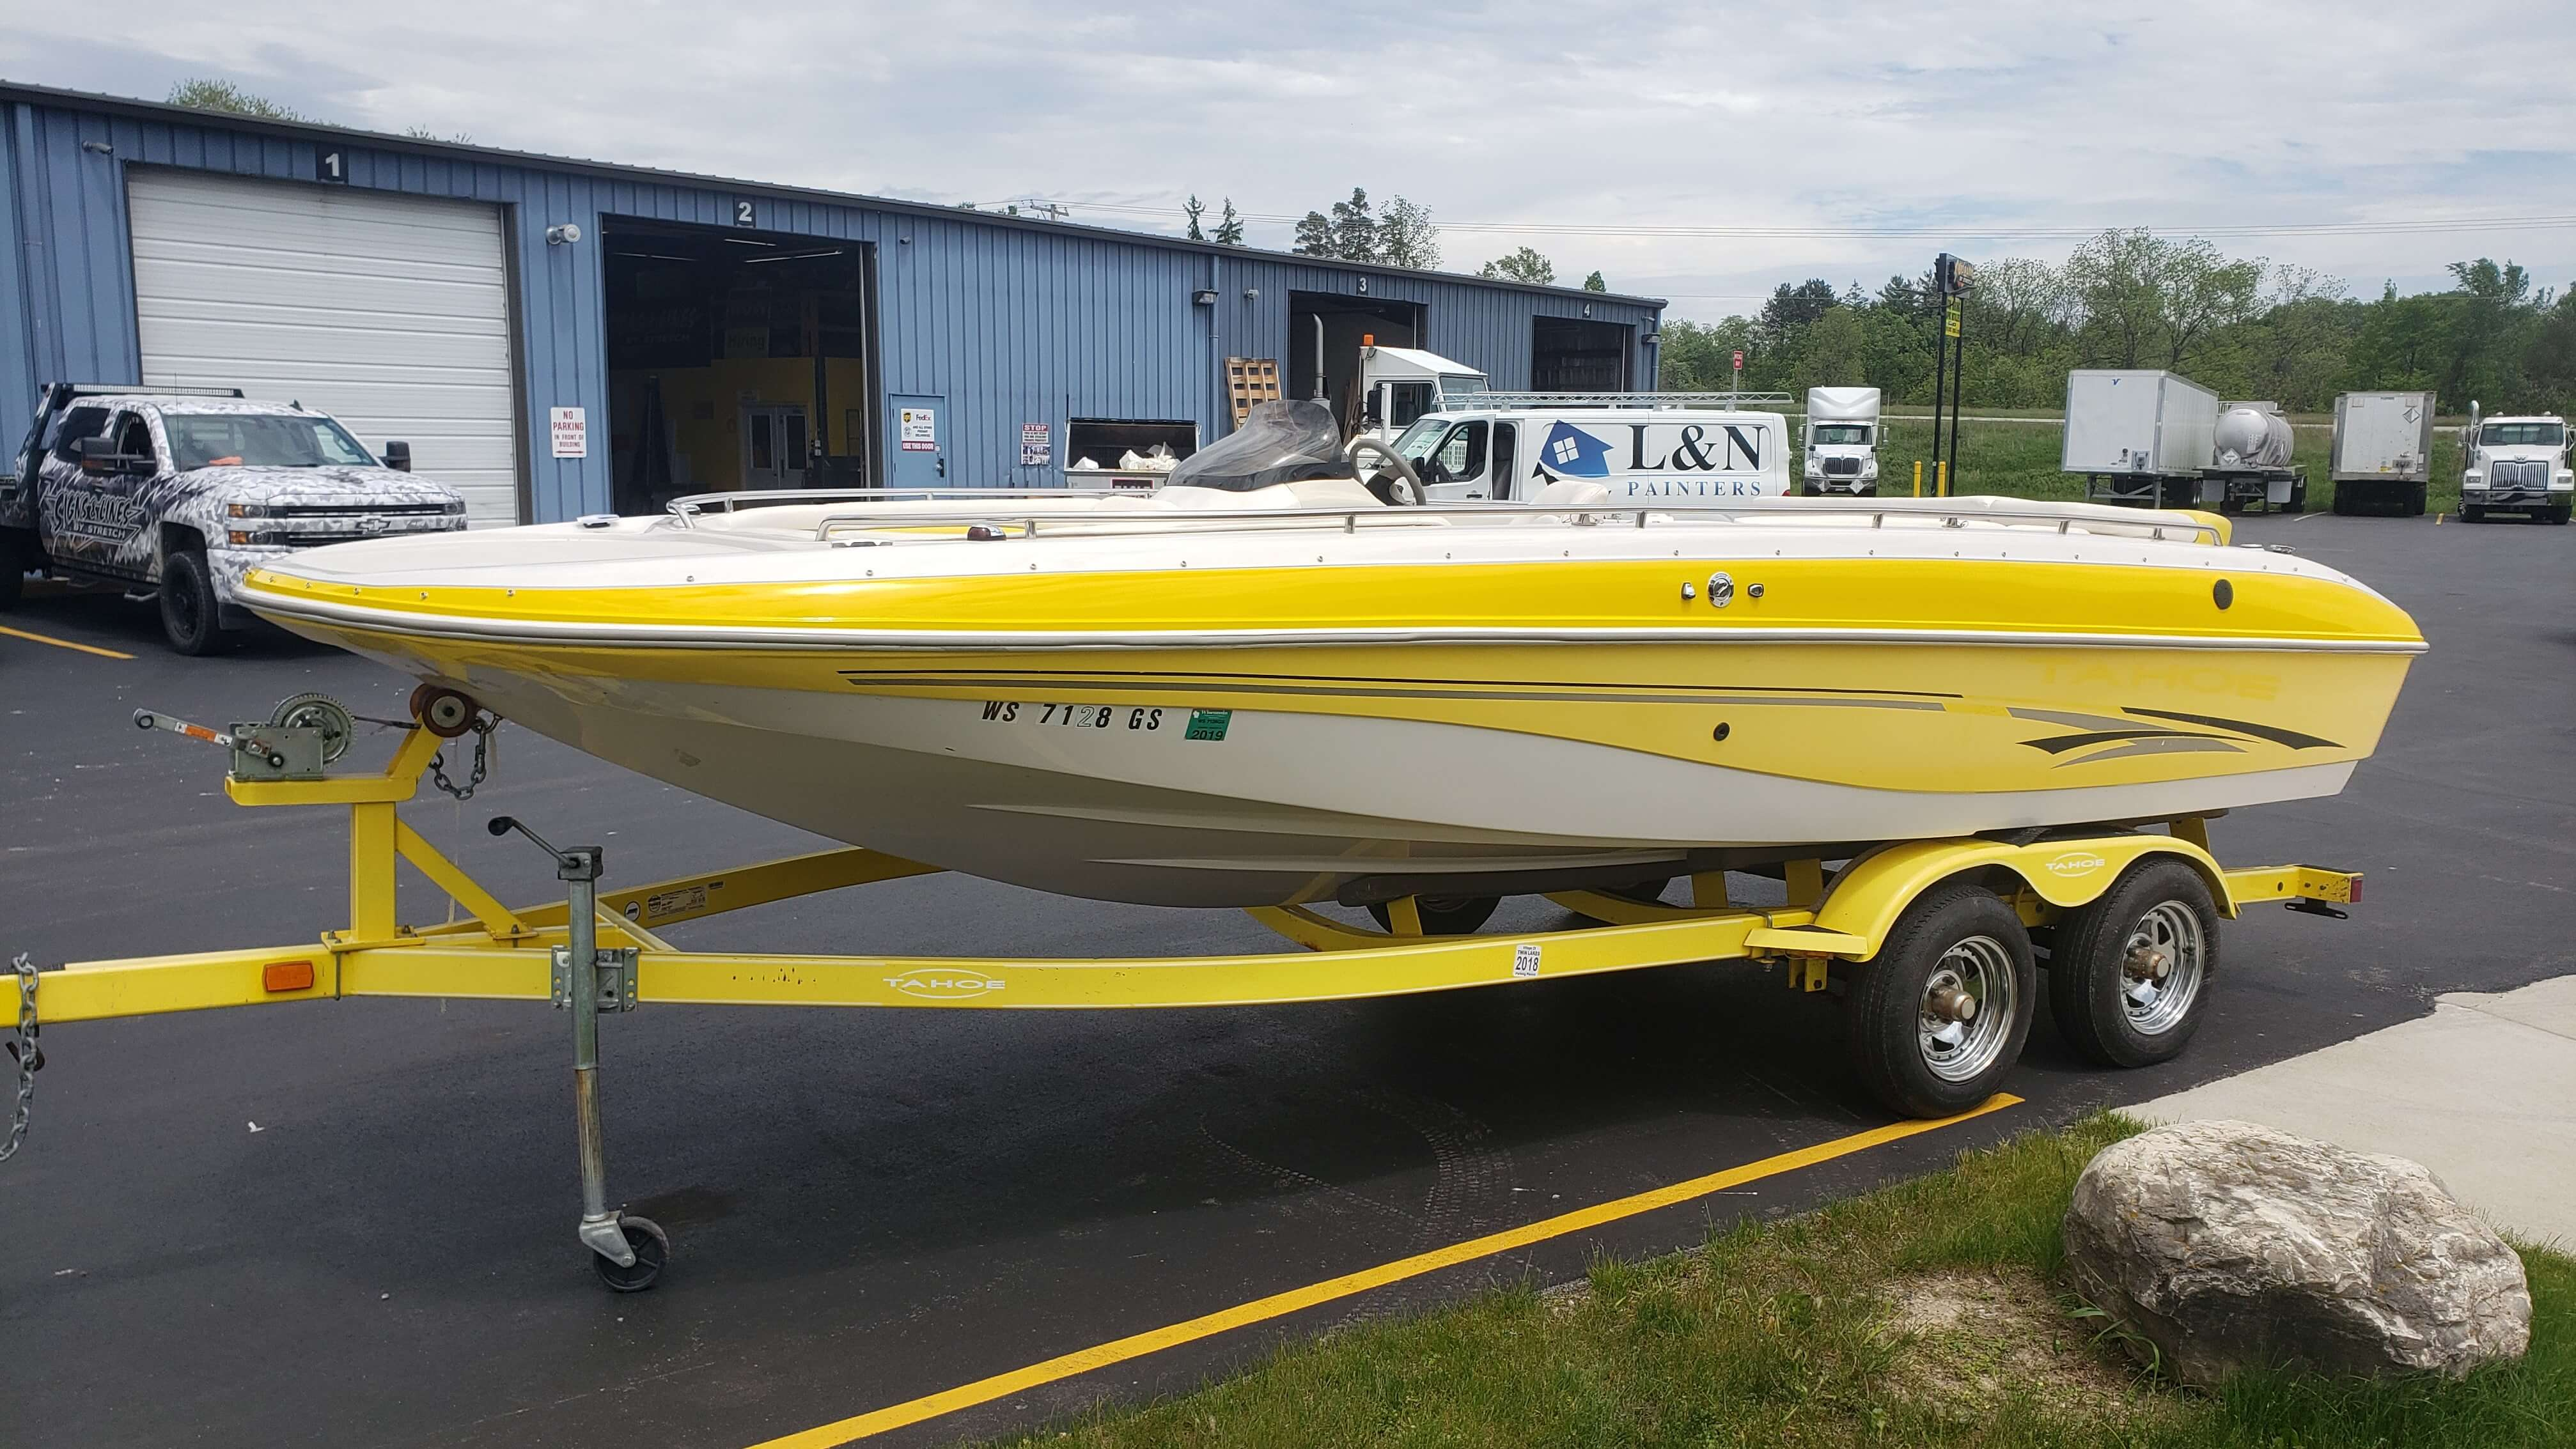 Earth tone pontoon boat vinyl wrap on trailer at Signs and Lines Lot with black and brown striping